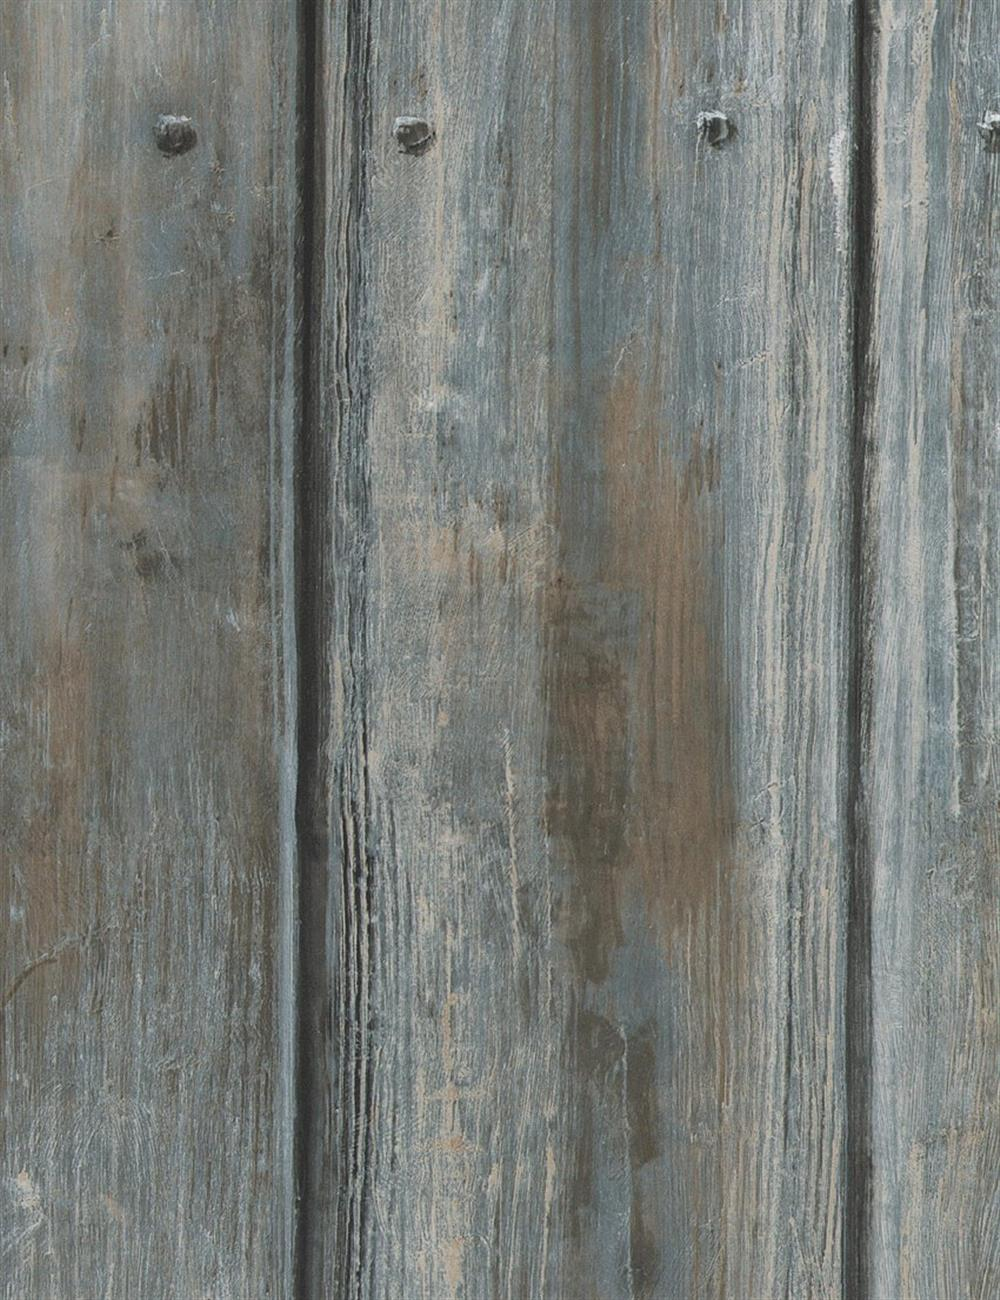 Rustic Lodge Timber Panel Wallpaper